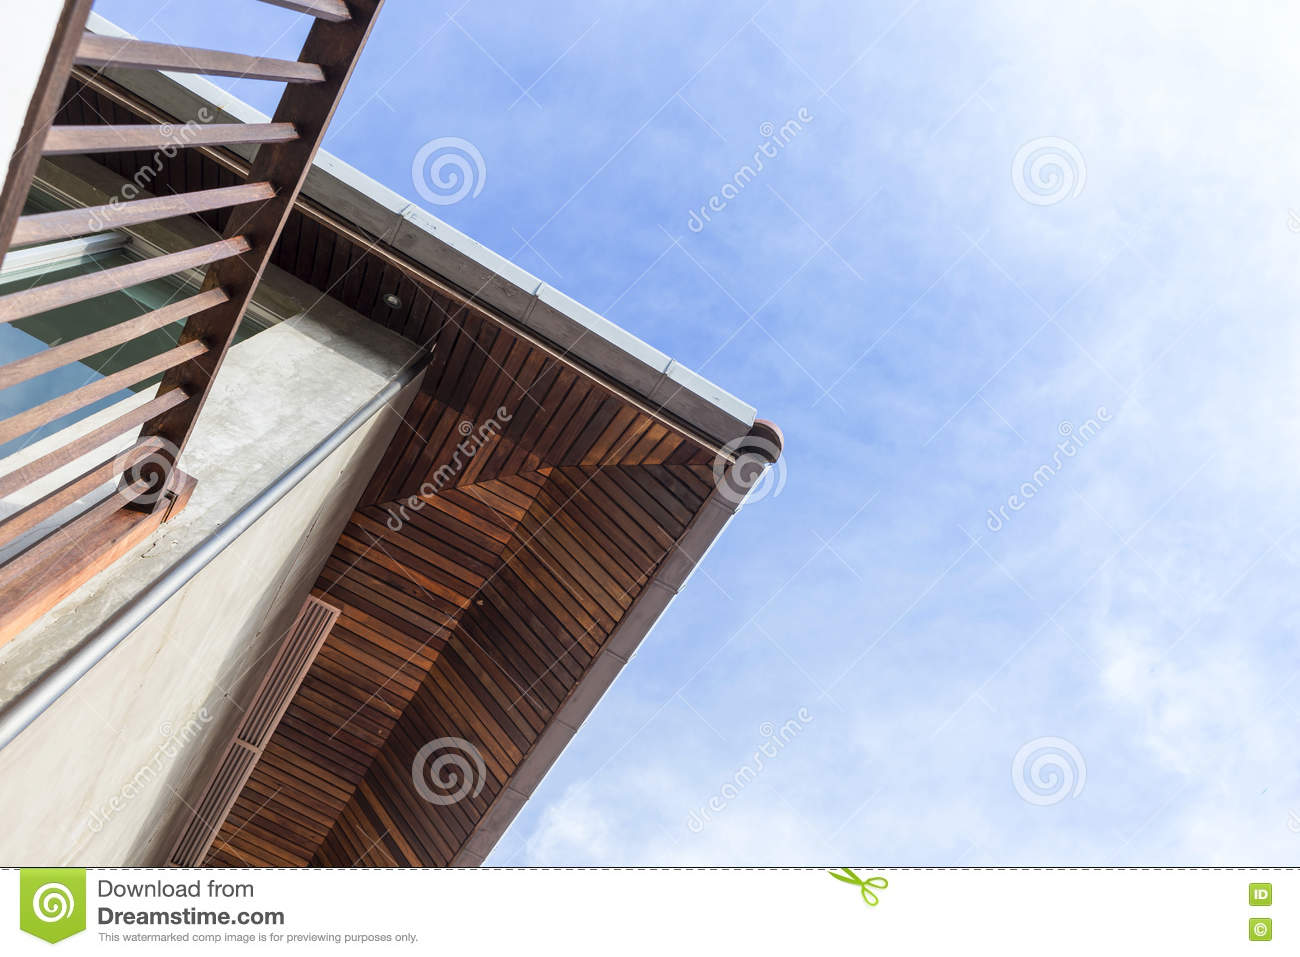 The Room In The Attic Under The Roof Royalty Free Stock